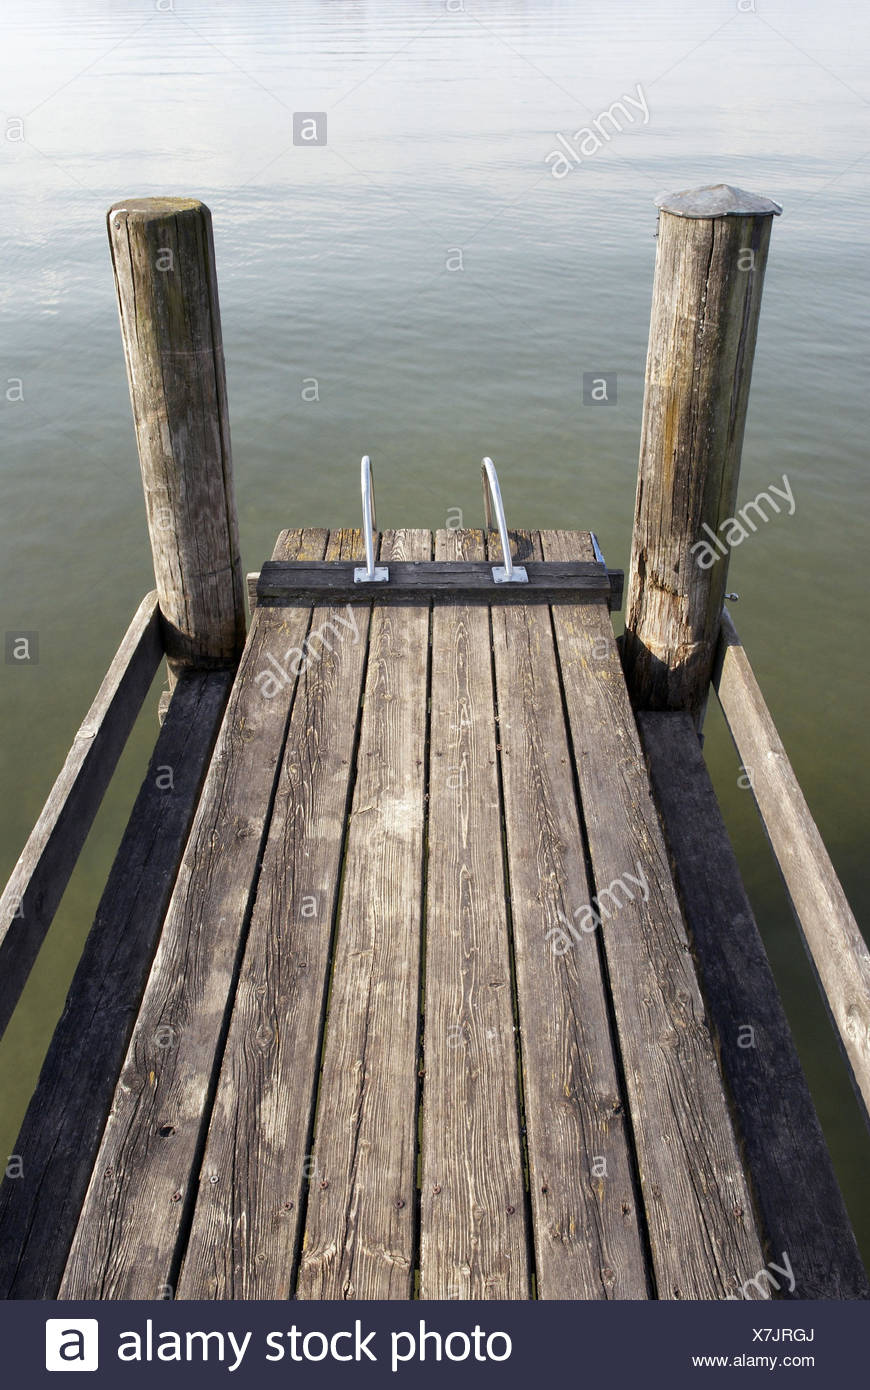 Landing stage, wooden planks, wooden posts, conductors, water, waves, mirroring, - Stock Image